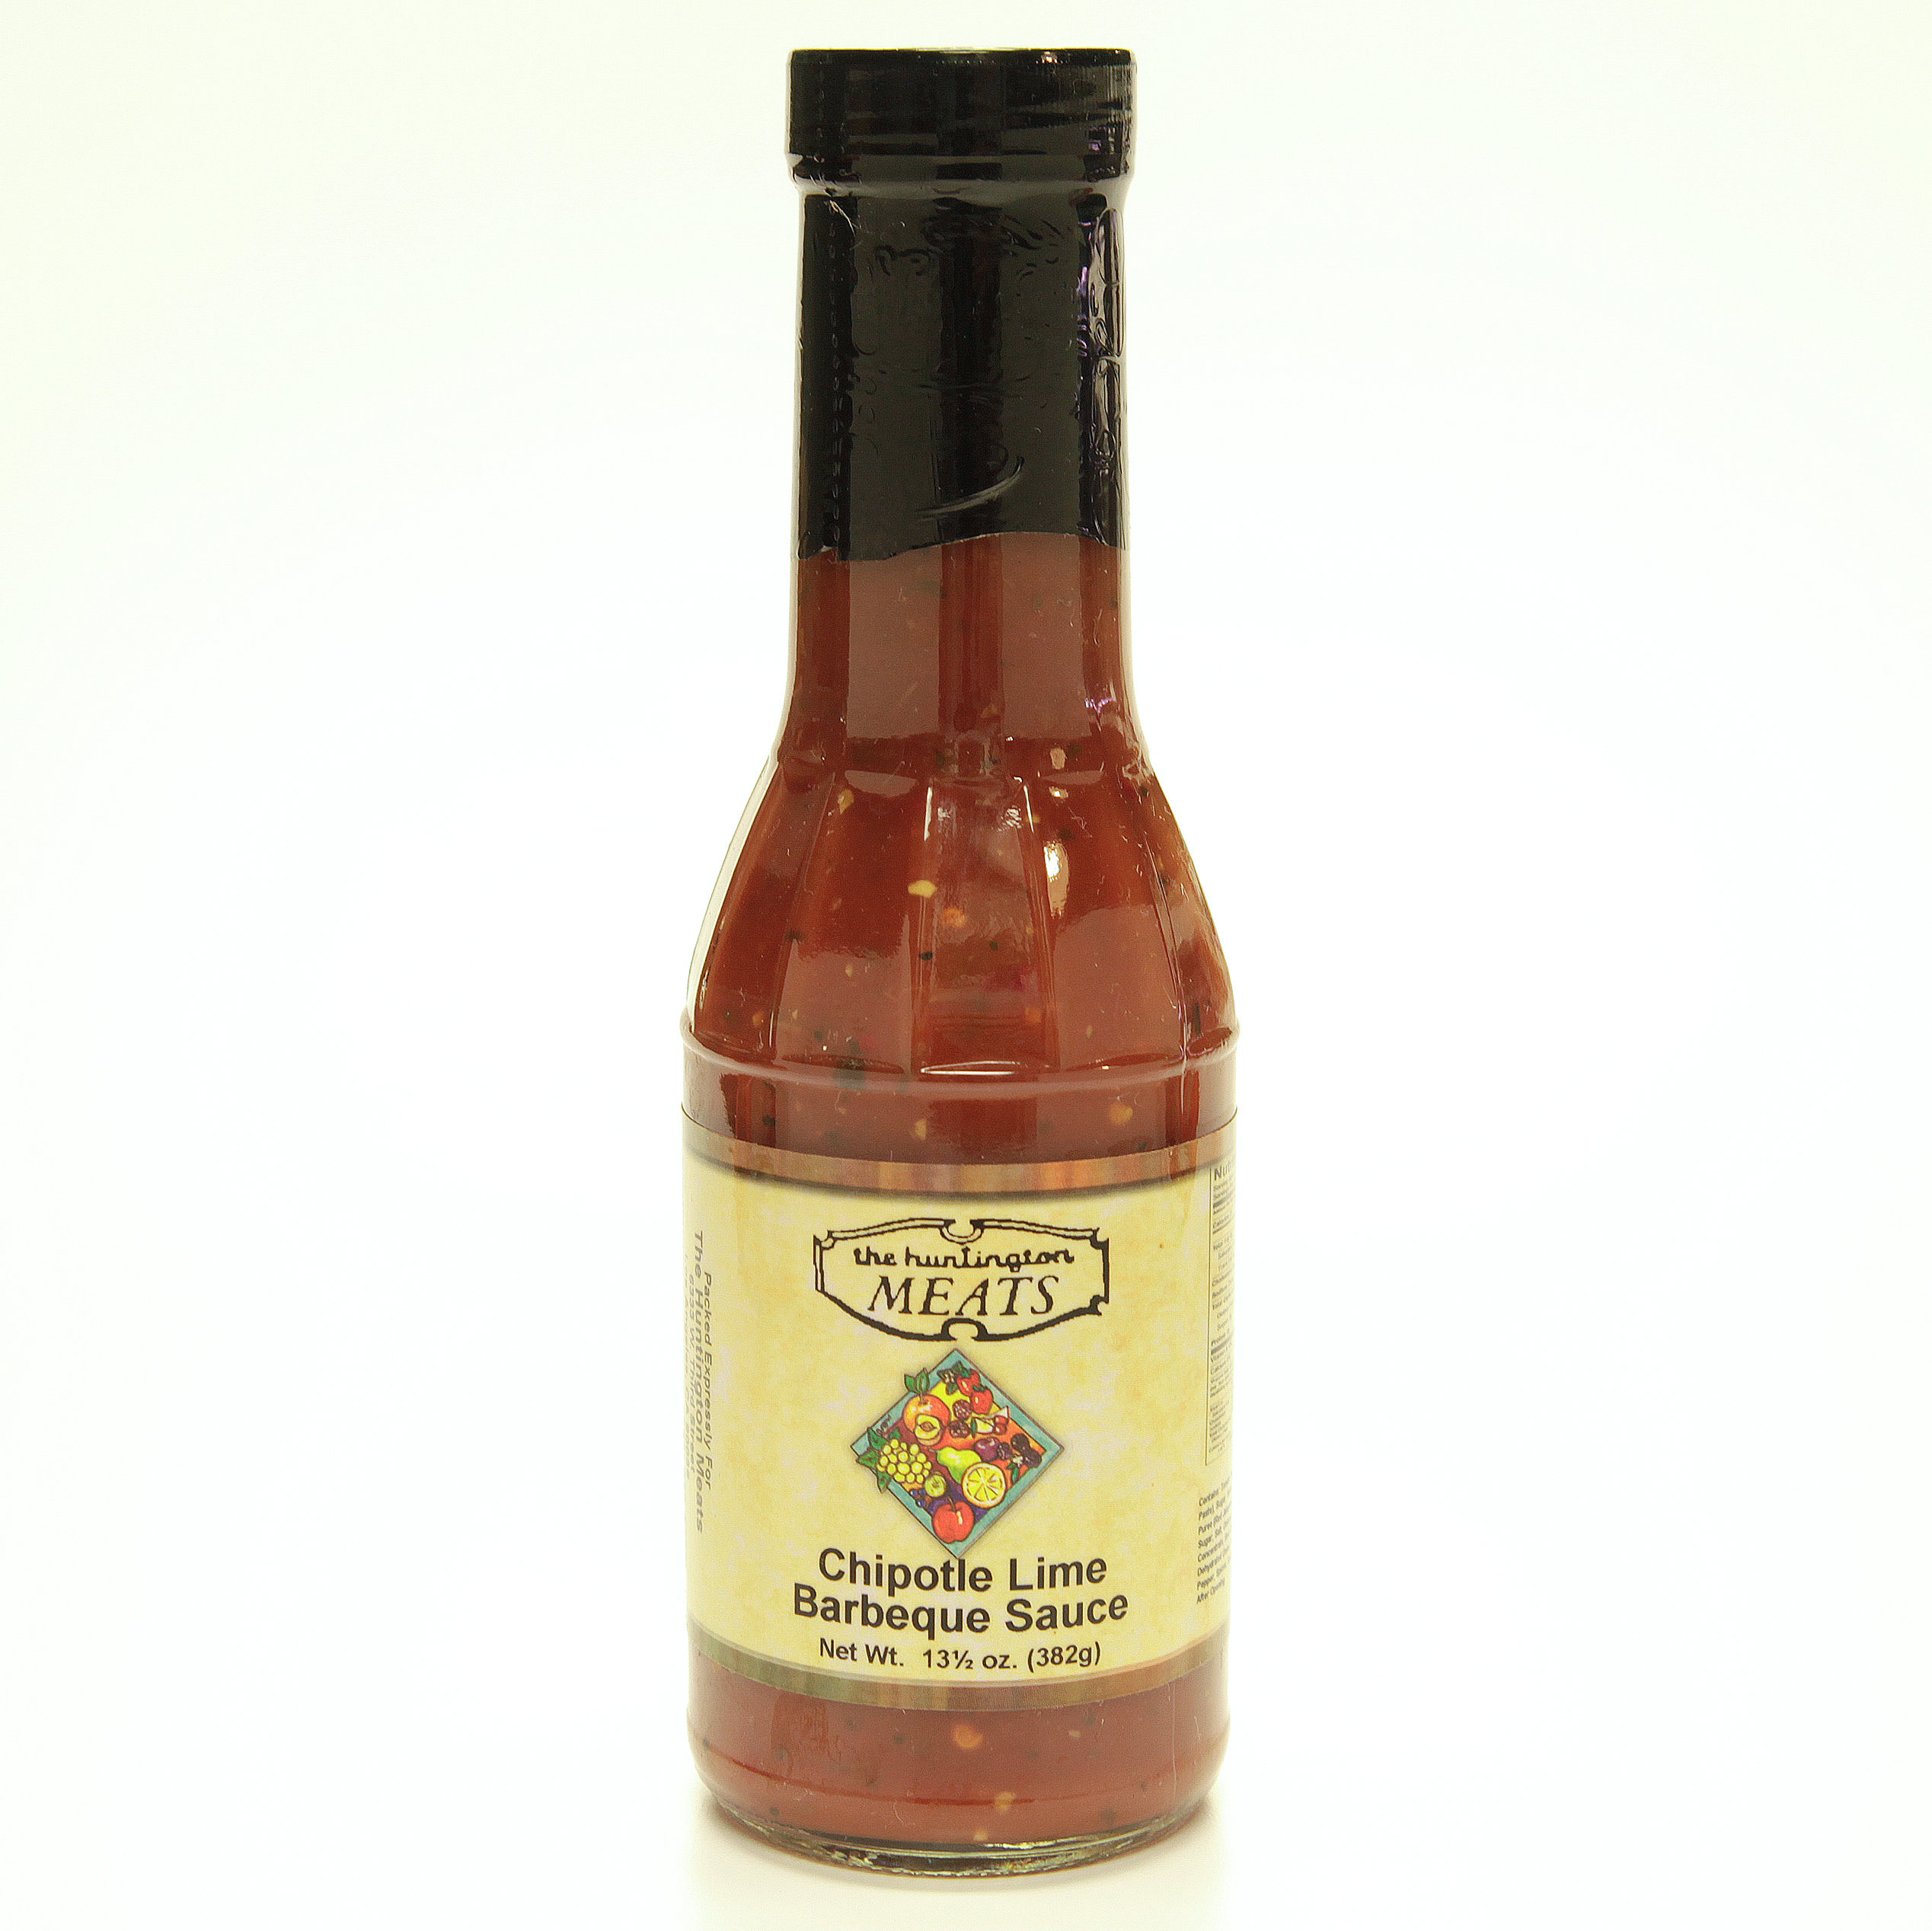 Chipotle Lime Barbeque Sauce, 15.5 oz. 00017